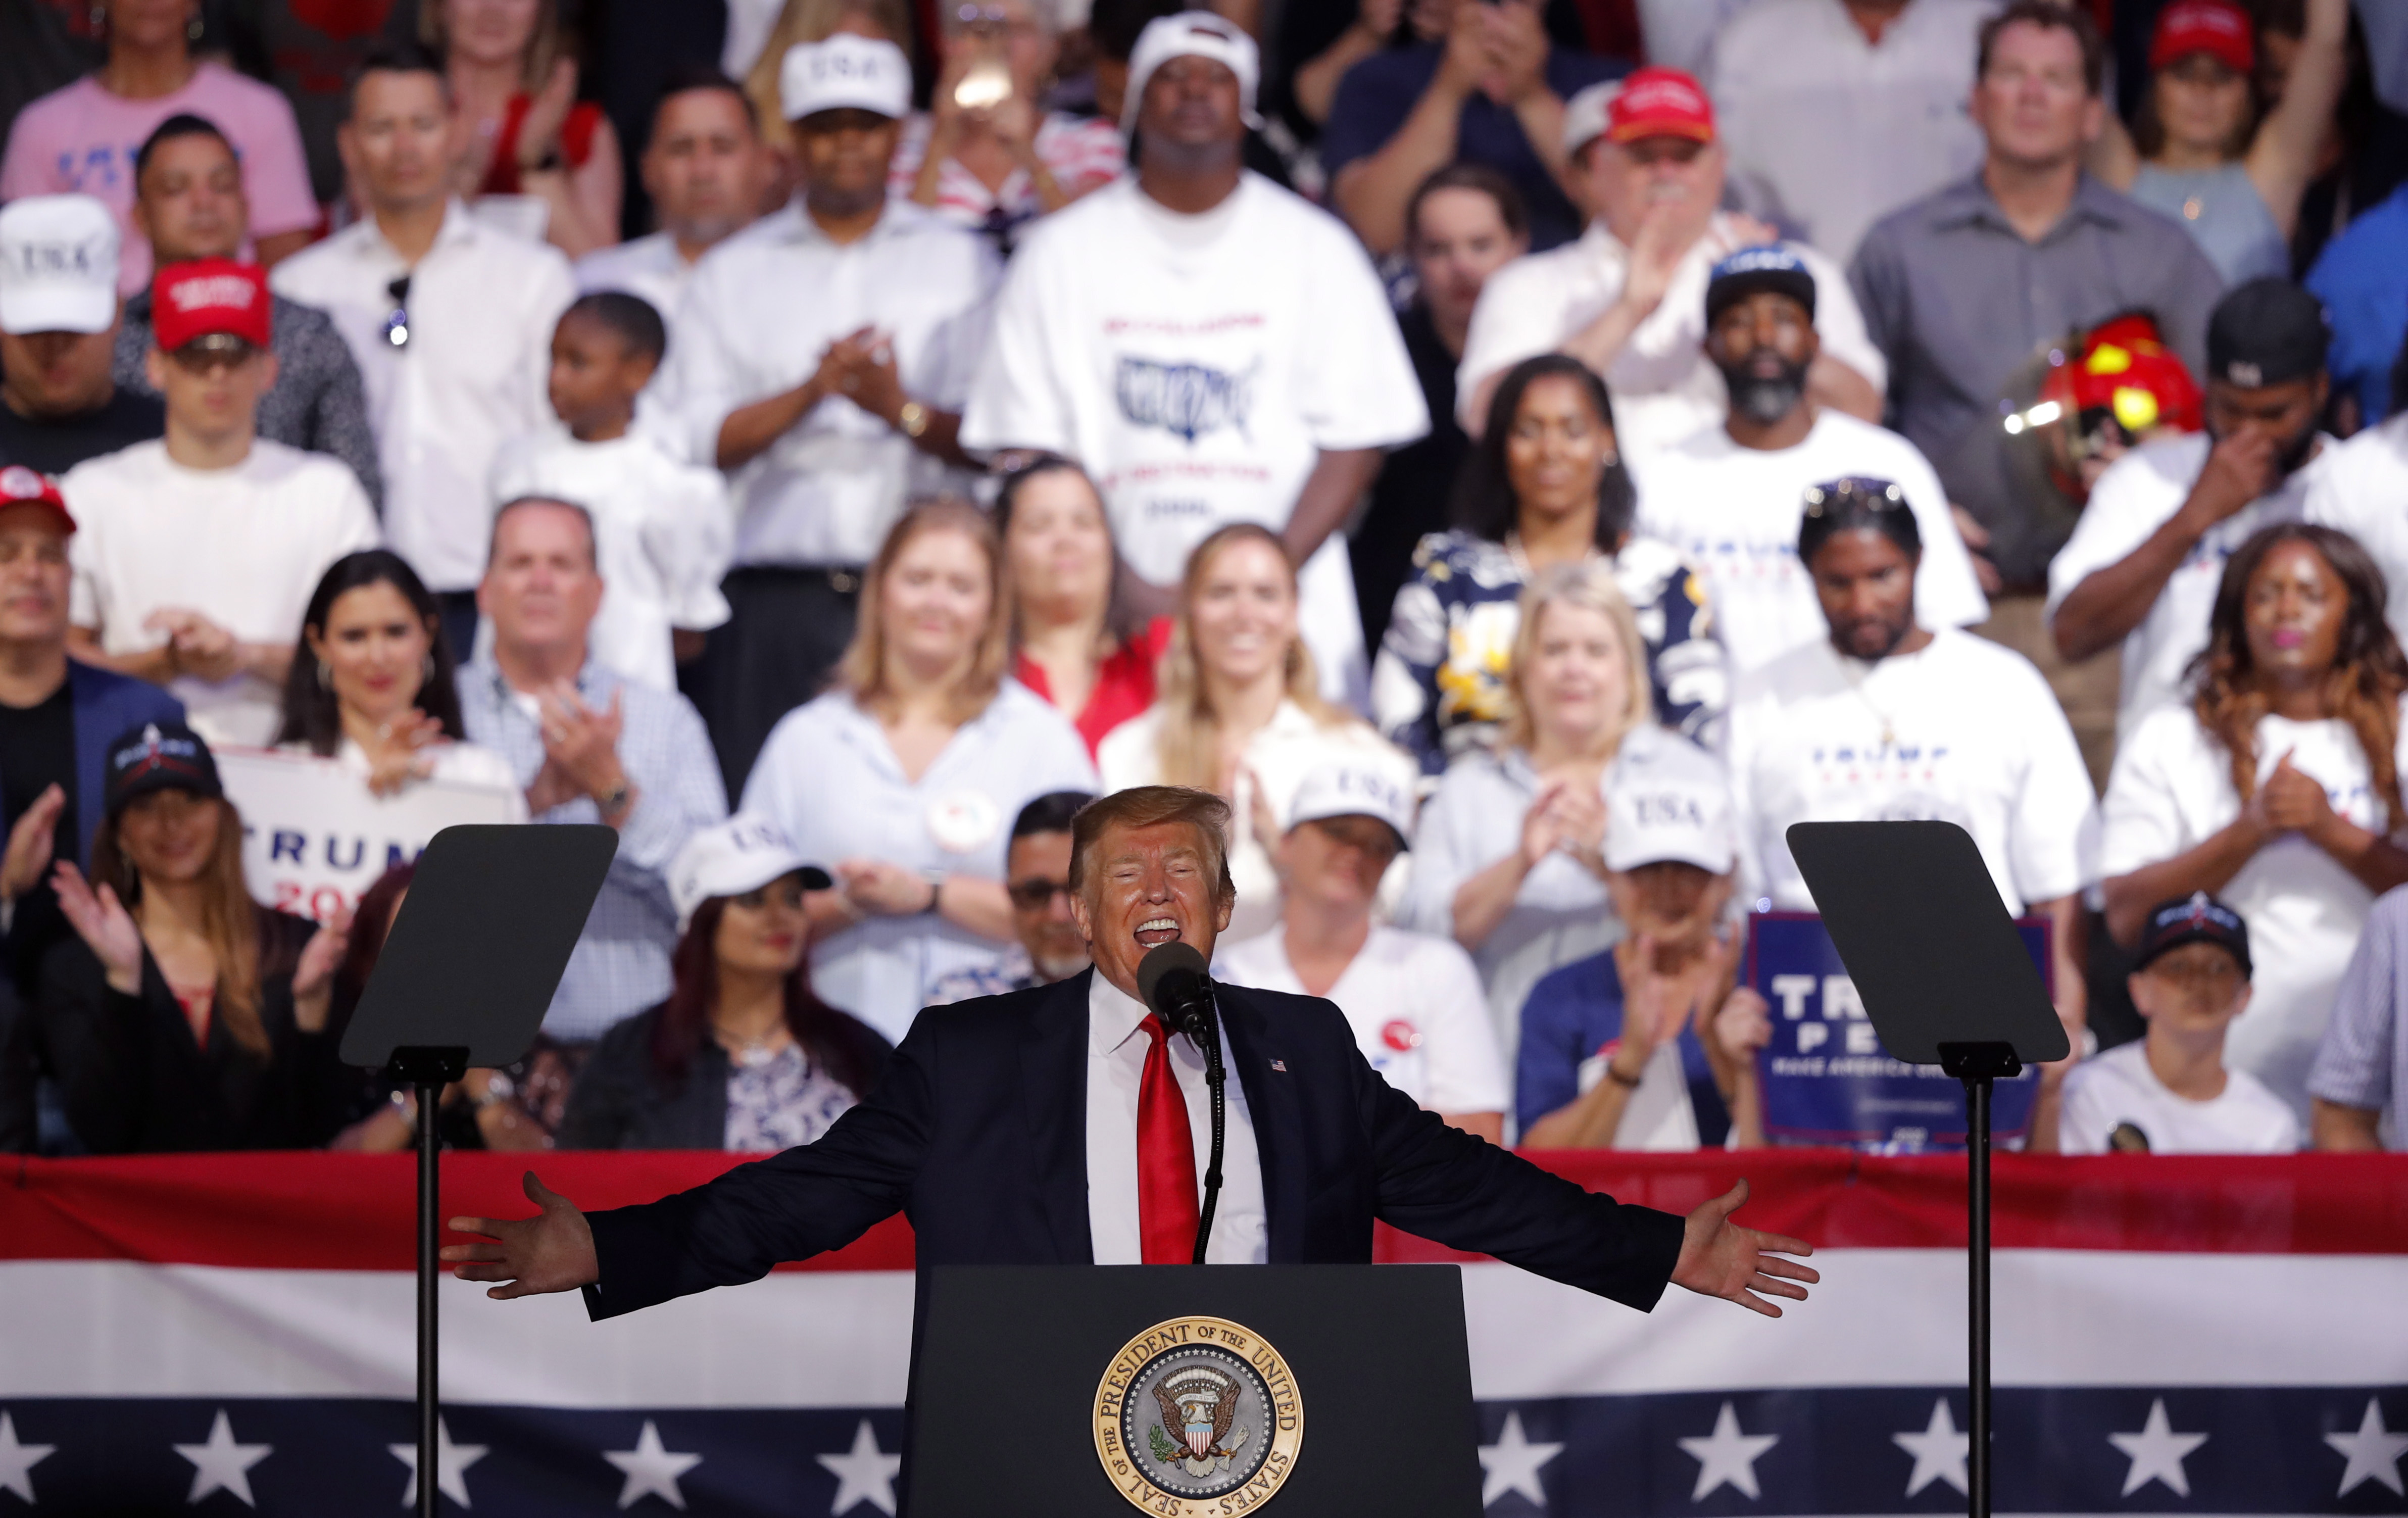 U.S. Pres. Donald Trump with arms outstretched addressing a rally.